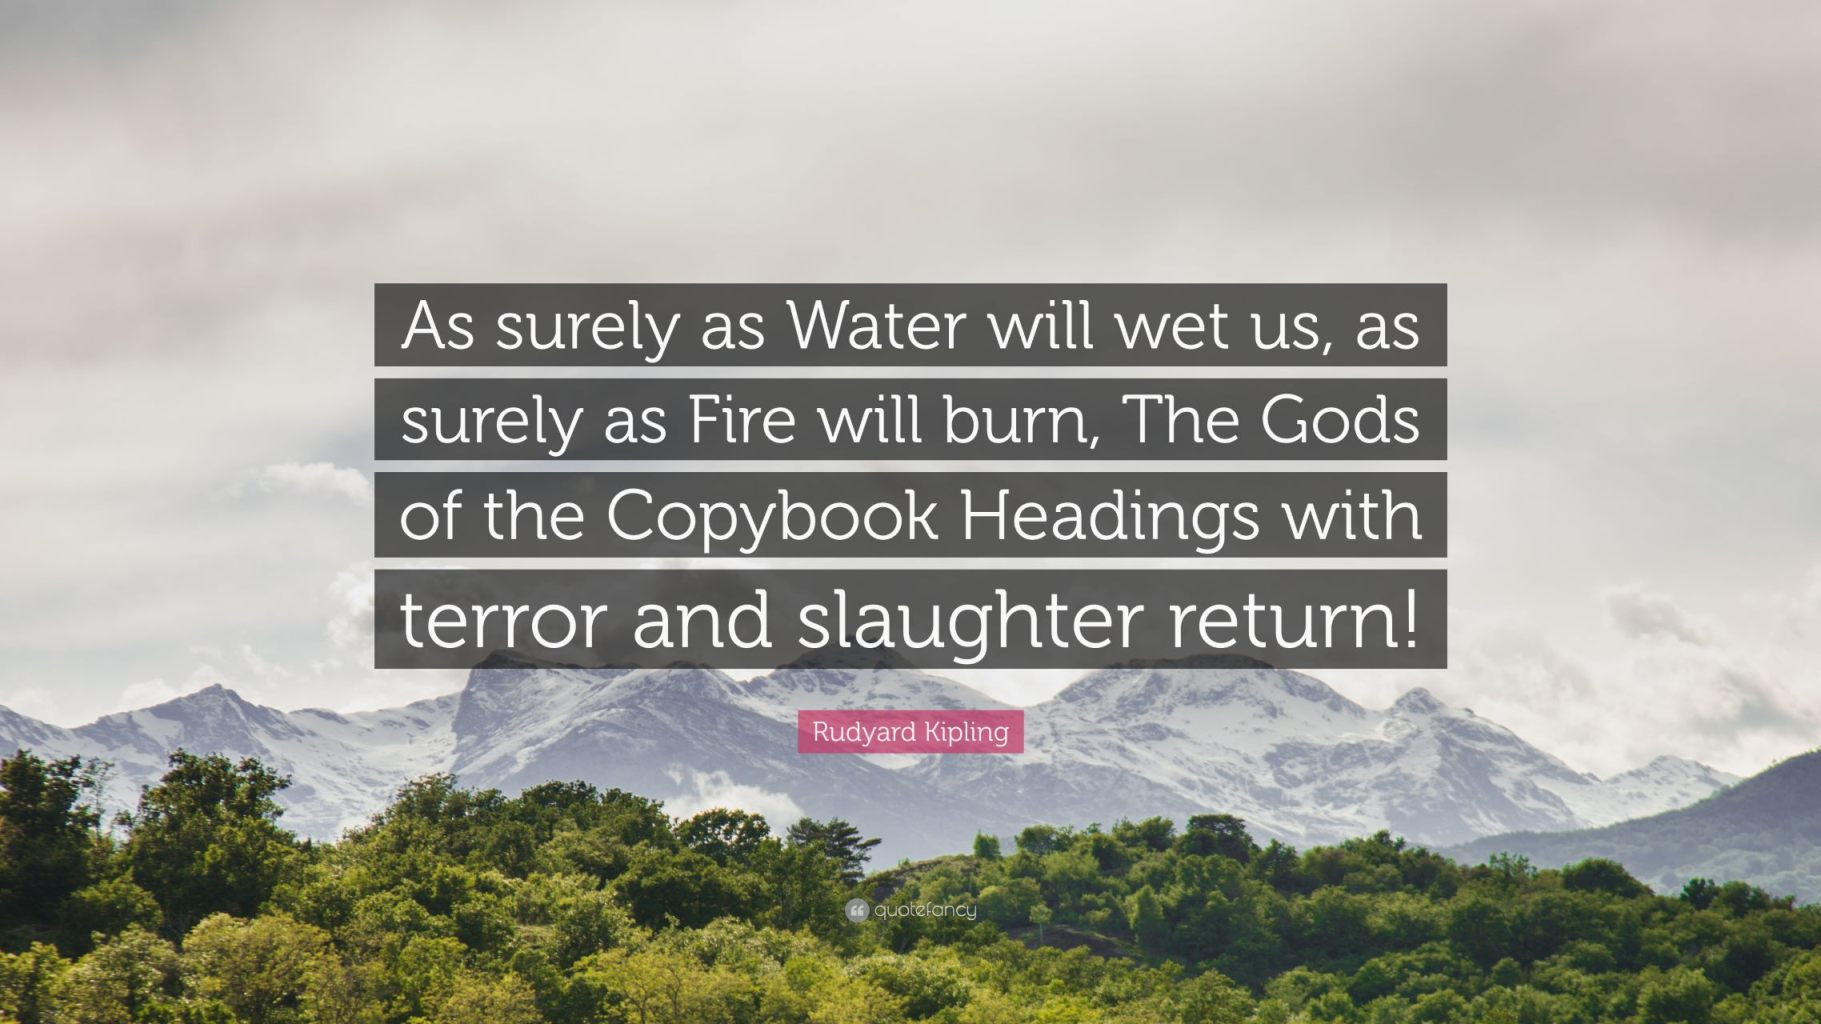 """""""As surely as Water will wet us, as surely as Fire will burn, The Gods of the Copybook Headings with terror and slaughter return!"""" — Rudyard Kipling - The God of the Copybook Headings"""